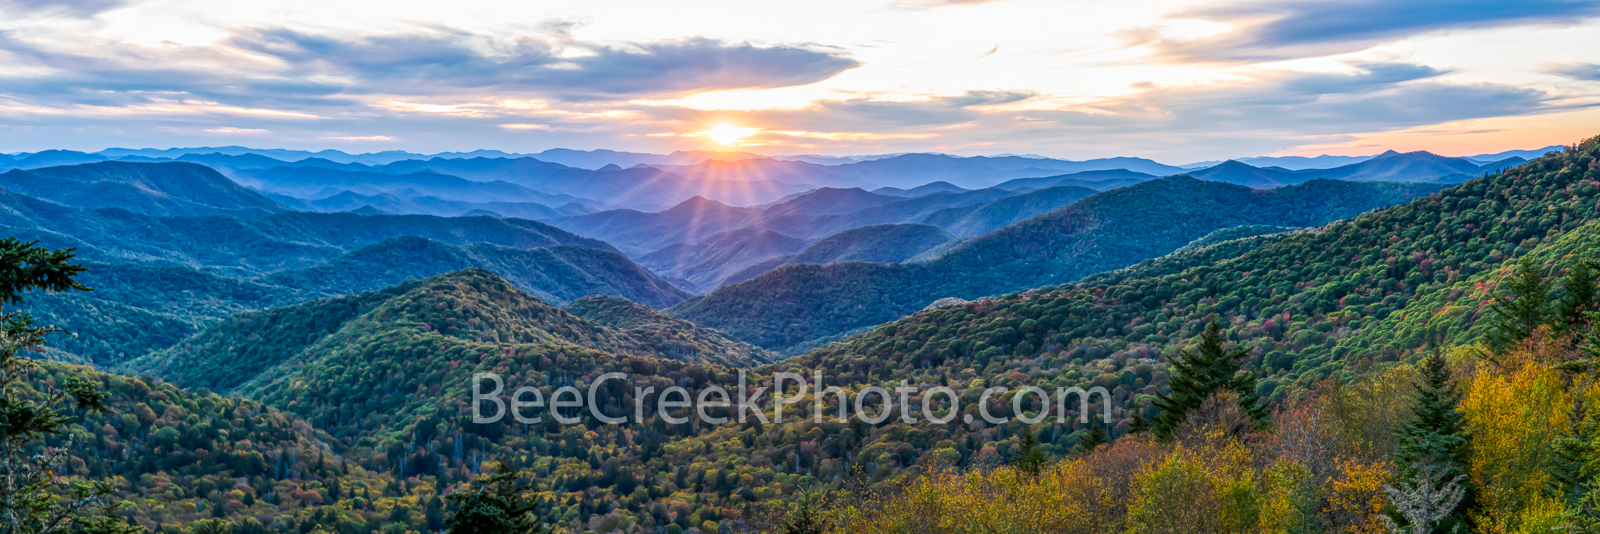 Smoky Mountain Sunset Pano - We had these amazing clouds and awesome sky come in just as I was trying to capture the sunset in...